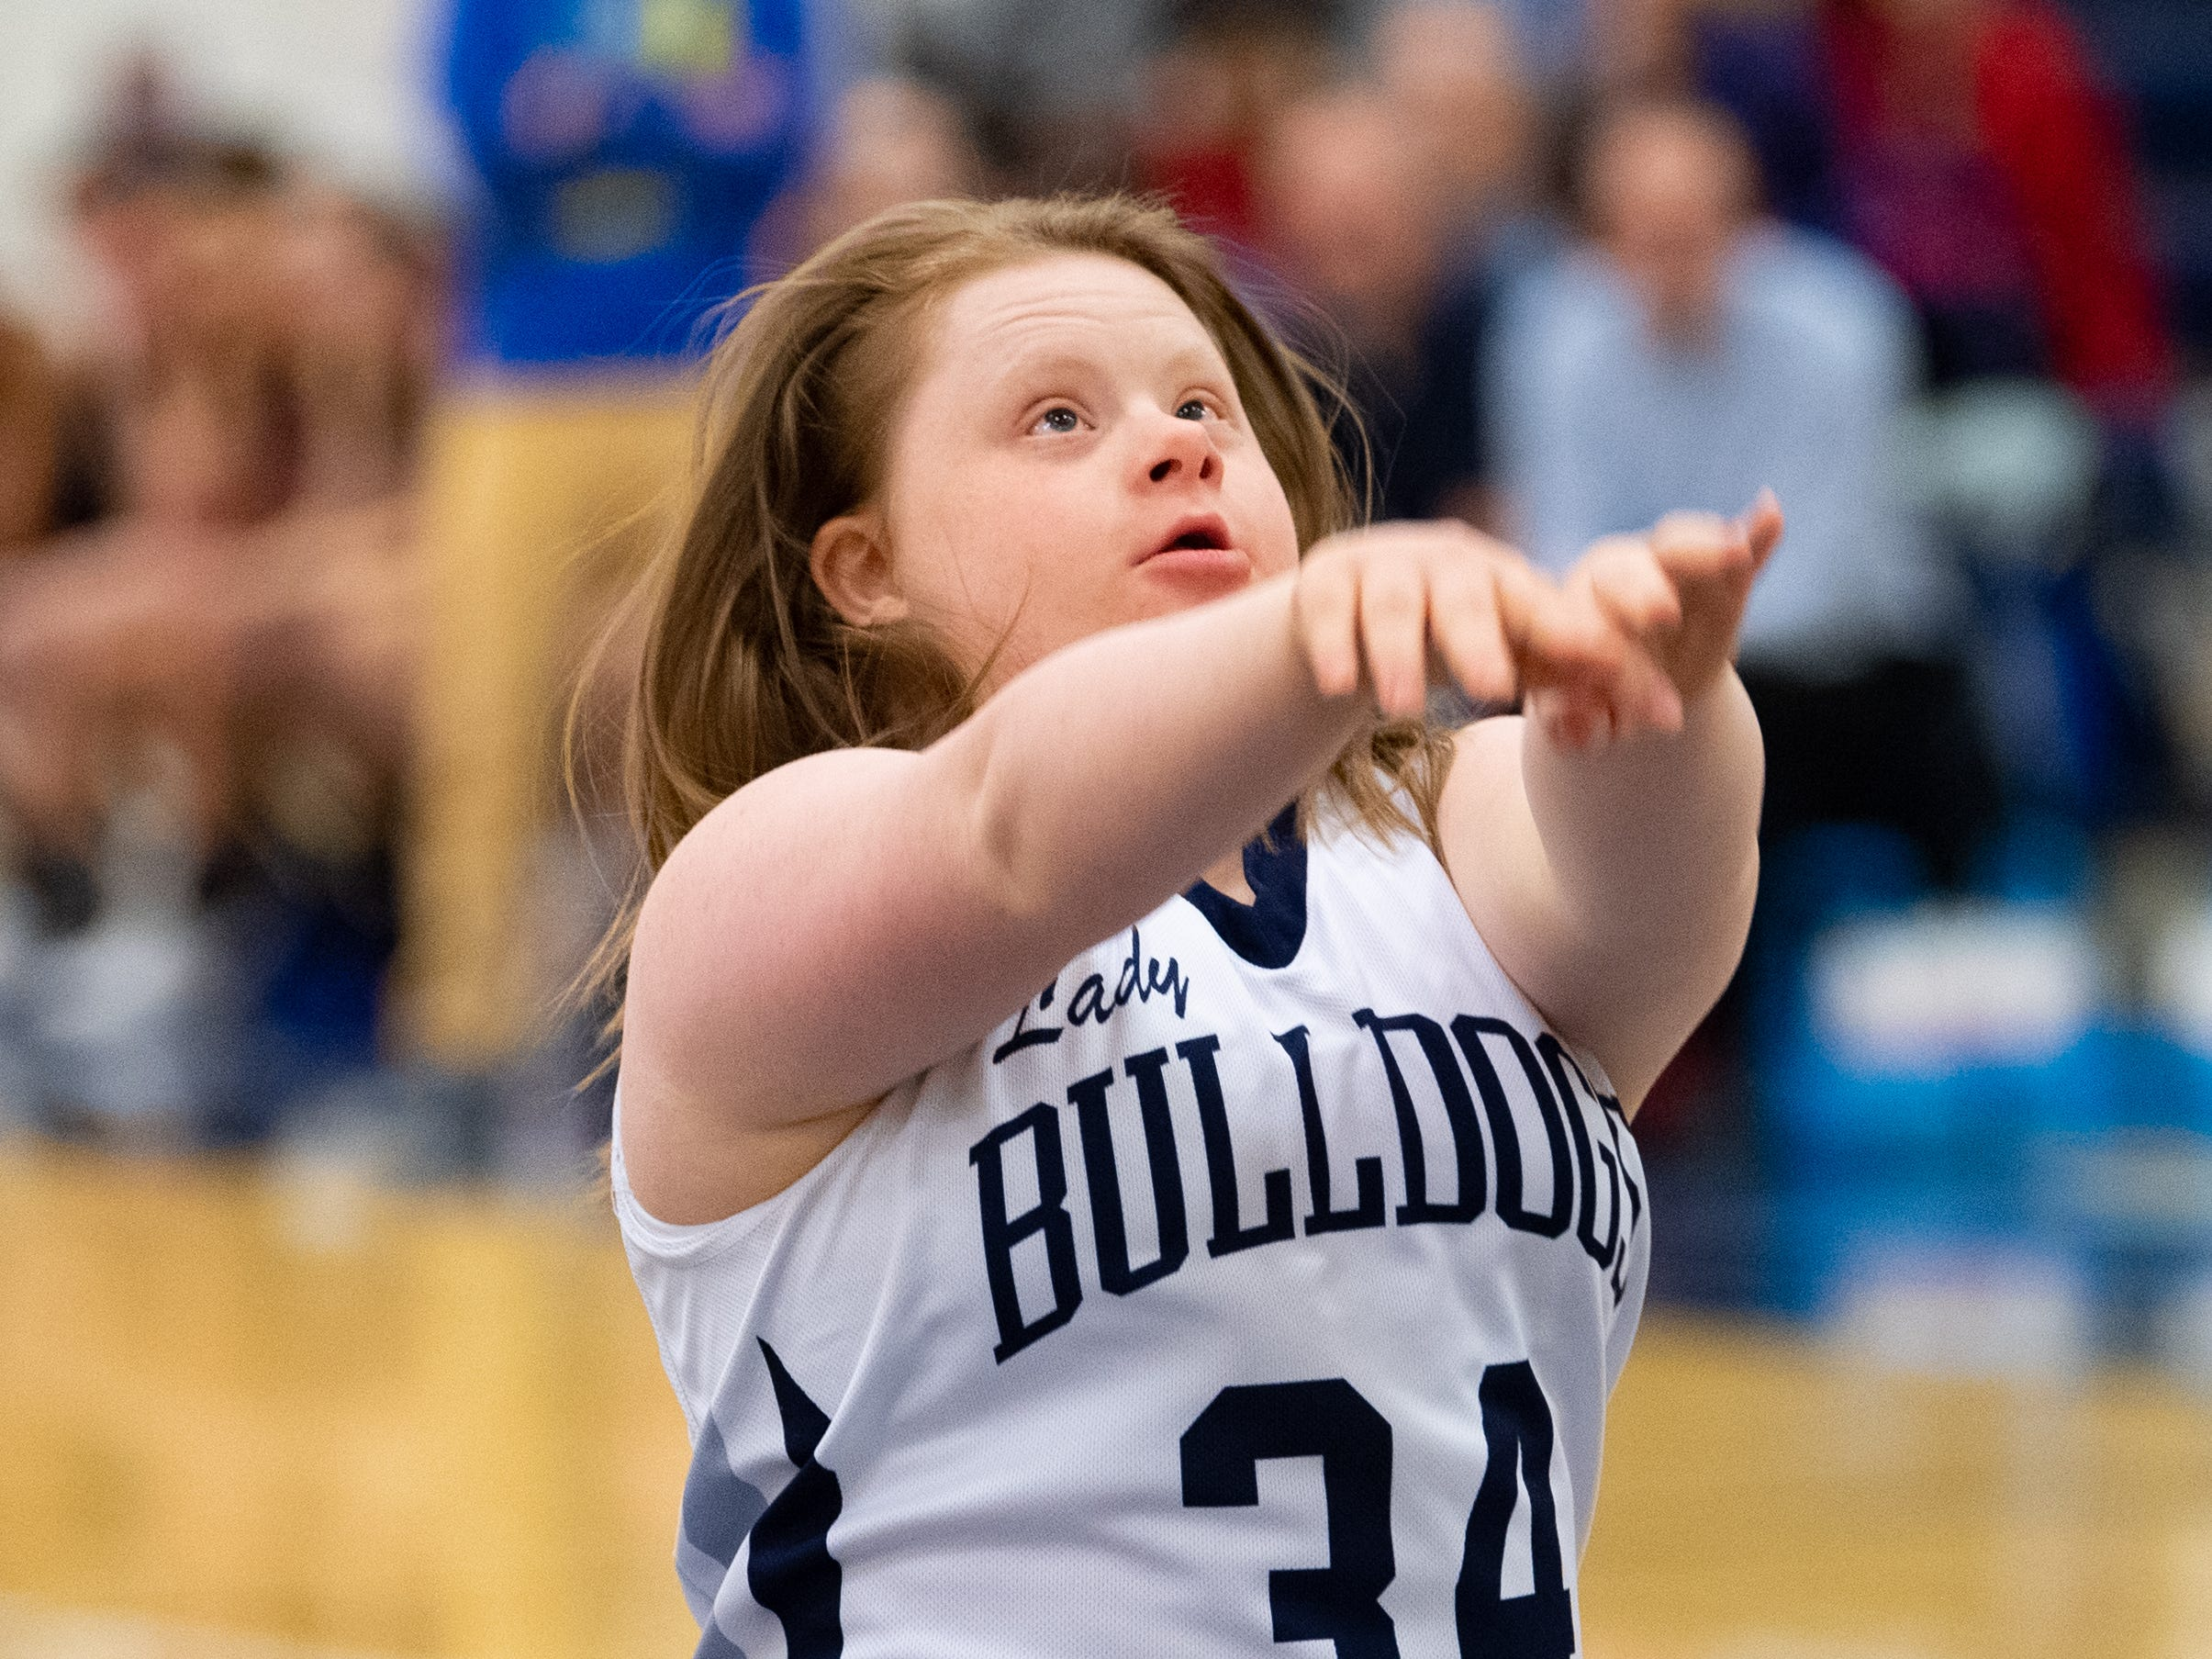 Katie Kniery (34) follows through on her shot during the junior varsity girls' basketball game between West York and Dover, February 1, 2019.